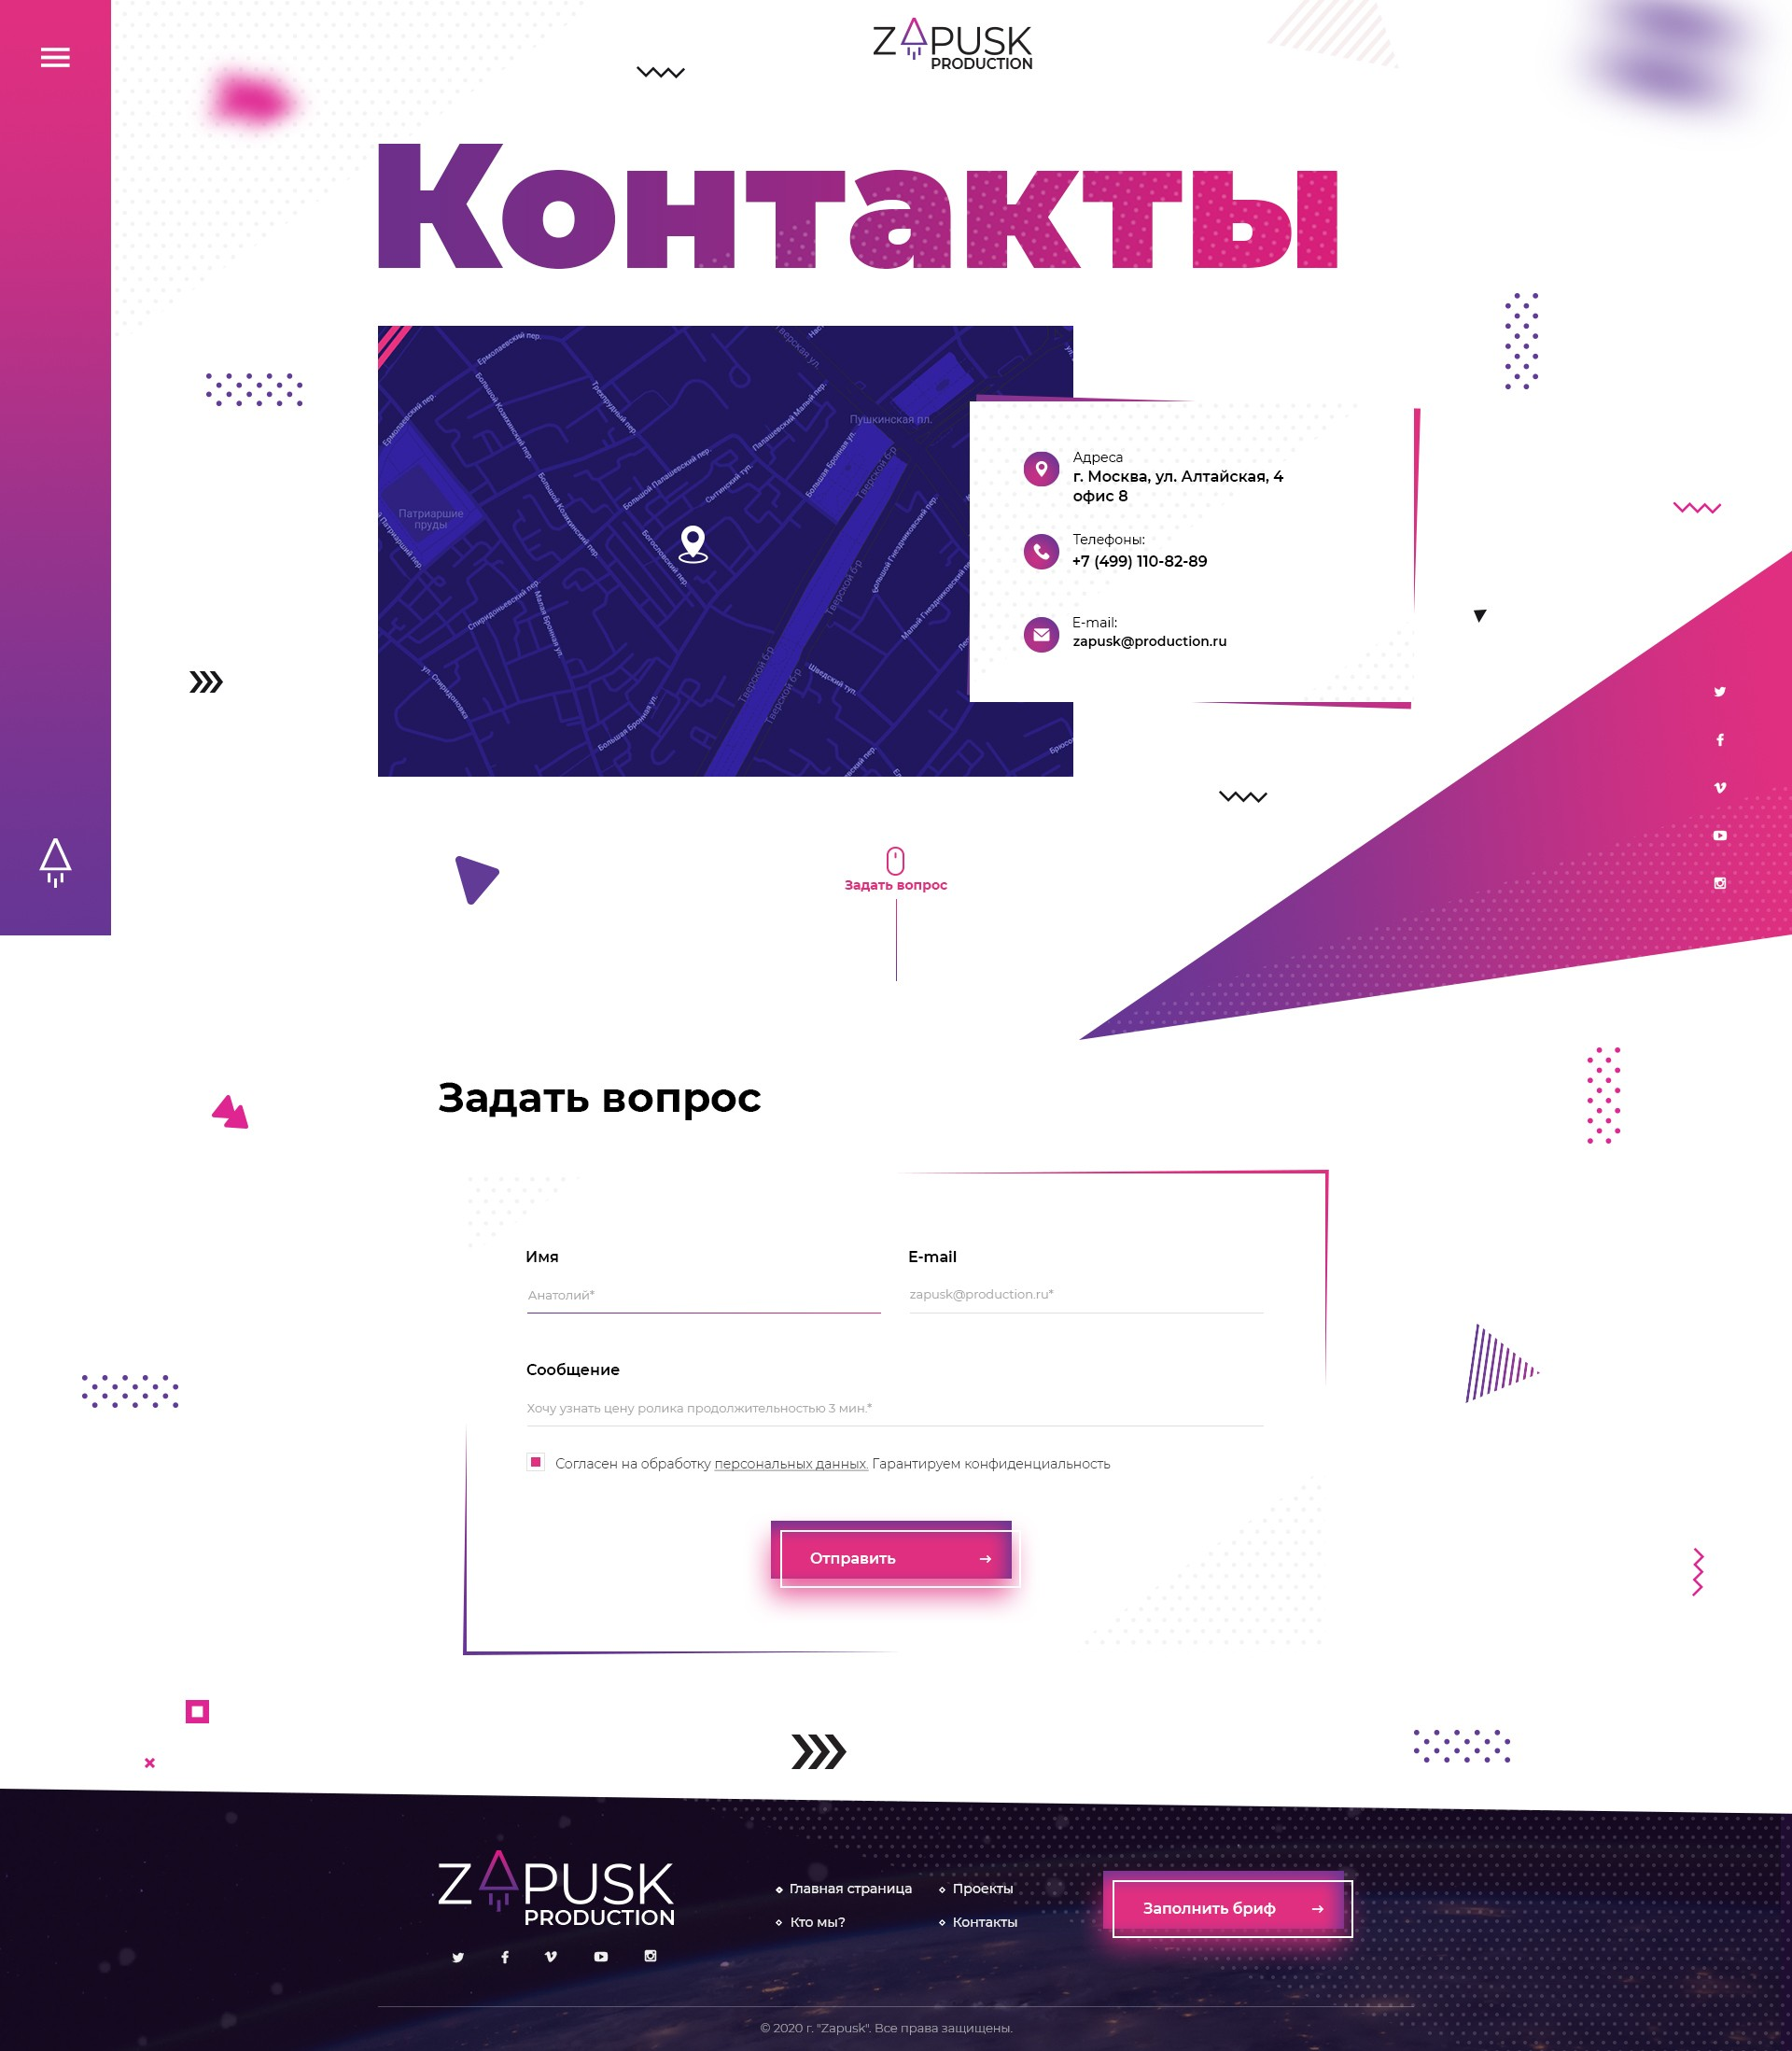 Zapusk_05_Our_Project_1.0